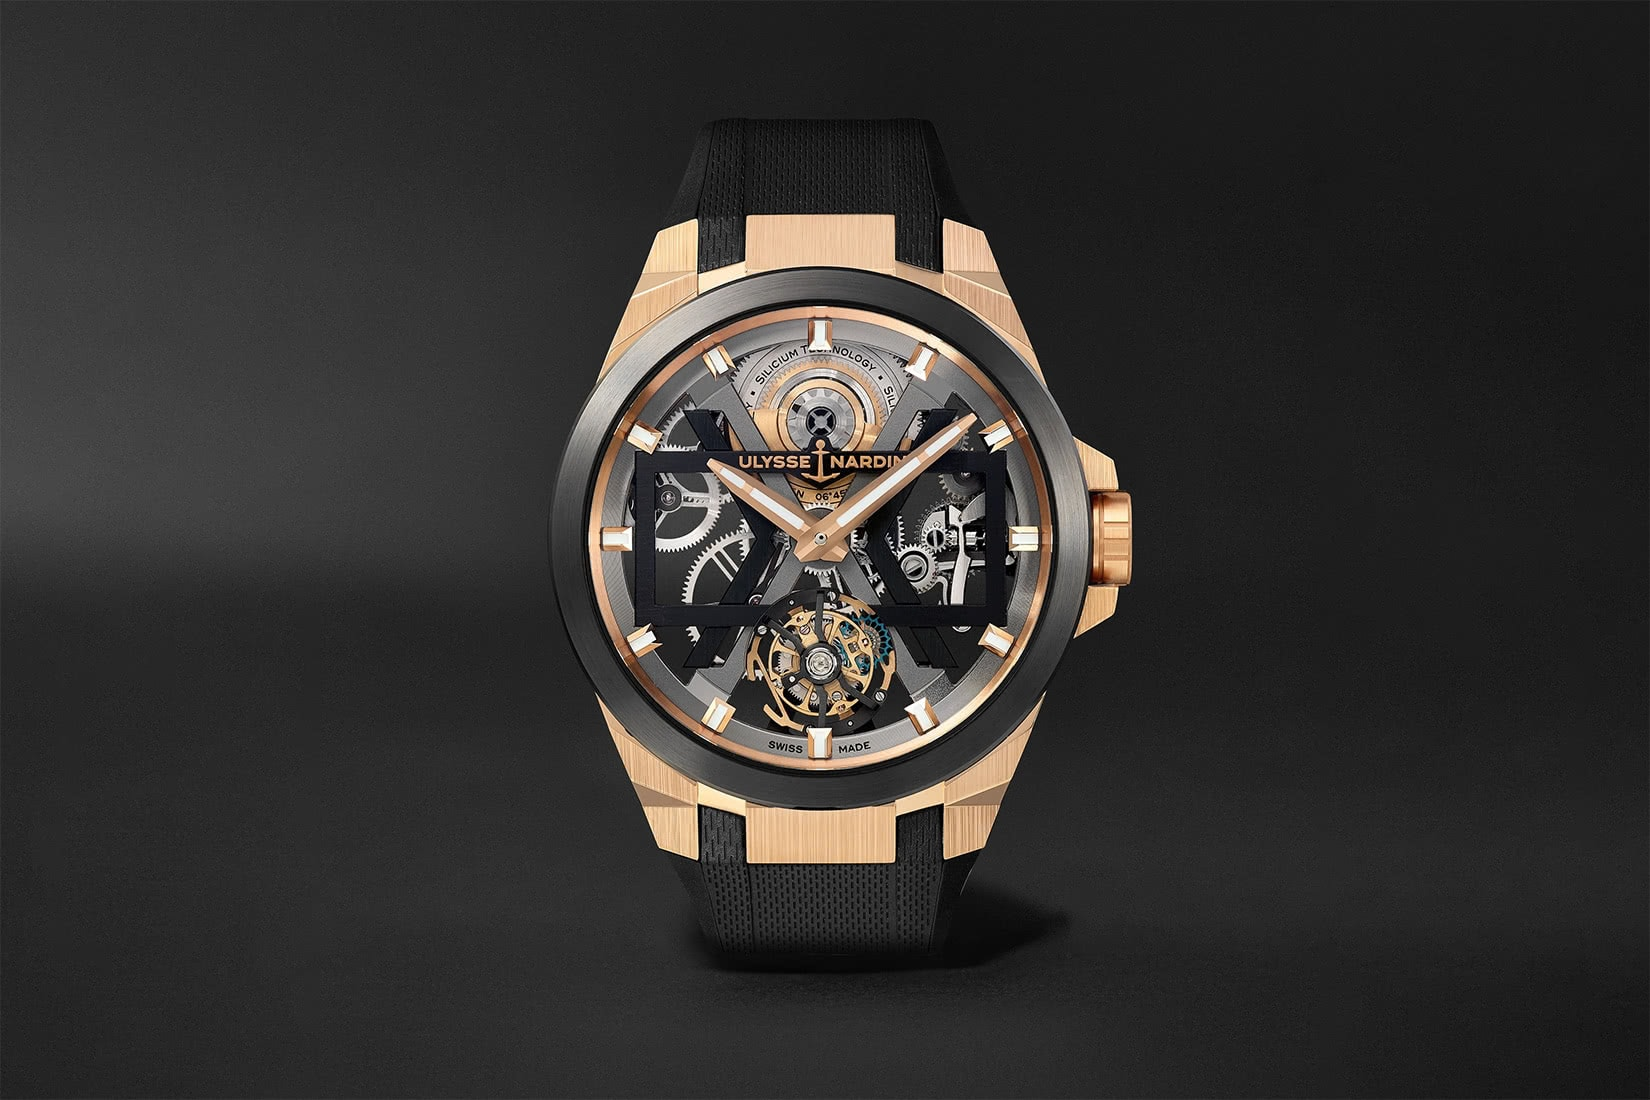 most expensive dive watch ulysse nardin review - Luxe Digital